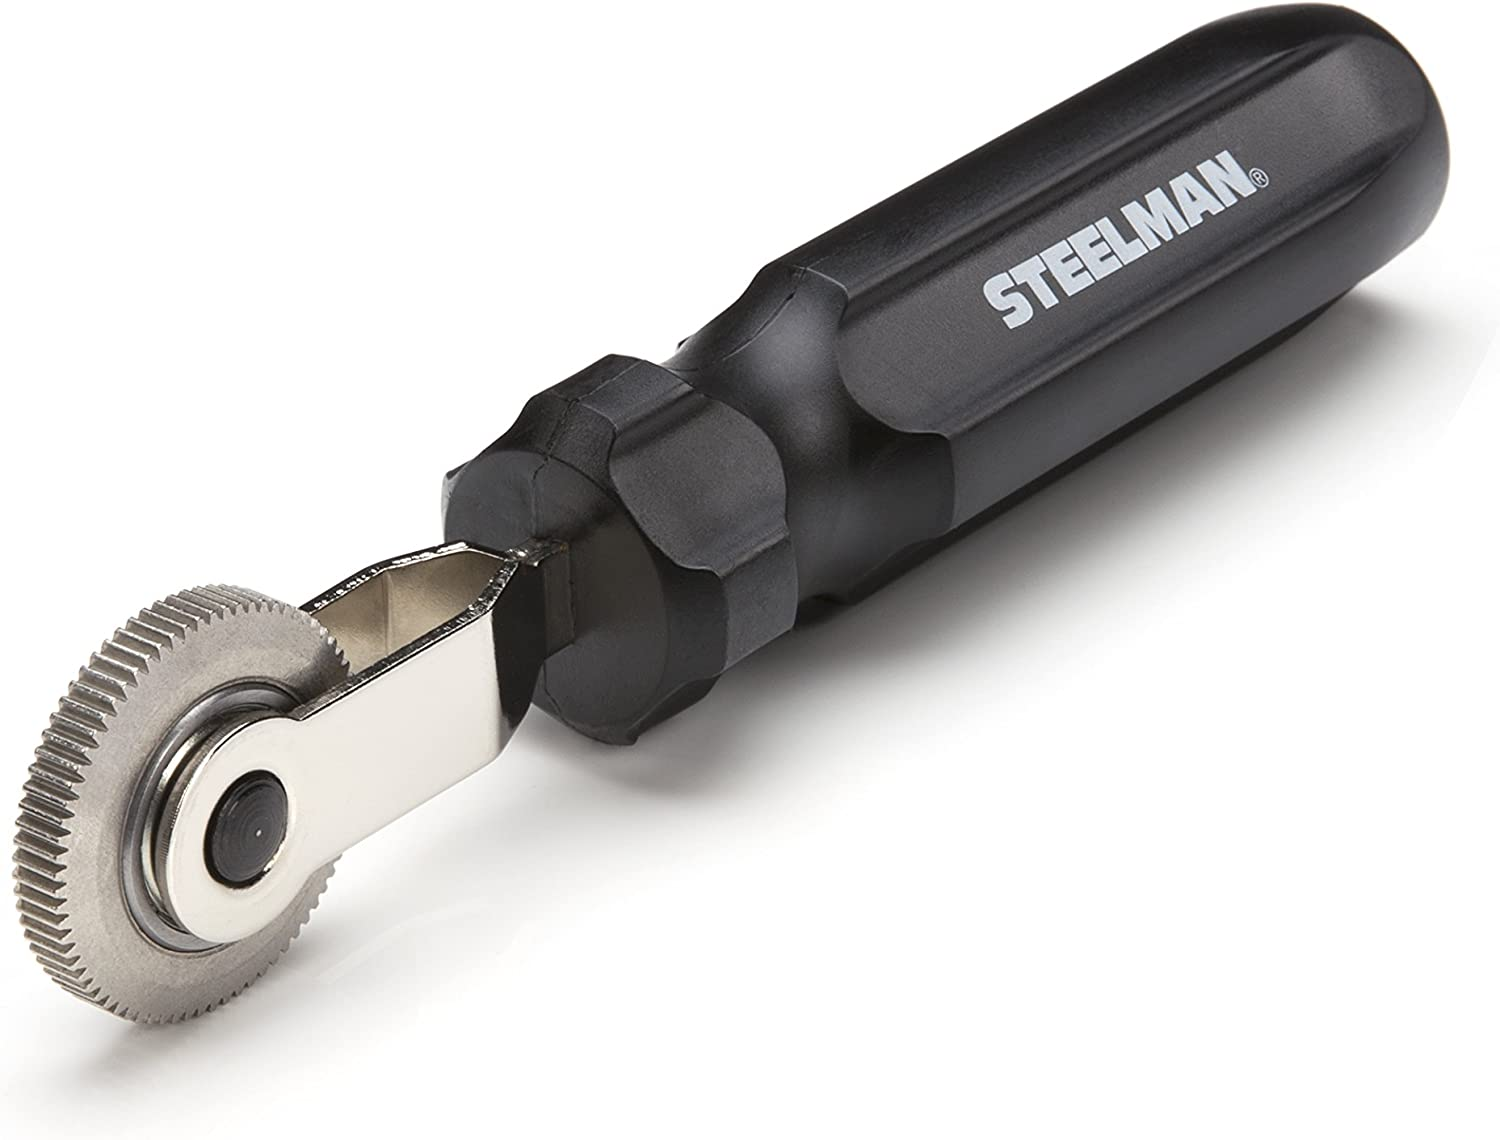 Steelman Tire and Tube Patch Auto Repair Stitcher Tool, Prevents Air Bubbles from Compromising Patch Job During RMA-Approved Flat Tire Repairs, Defined Teeth, 1 1/2-inch Wheel: Automotive